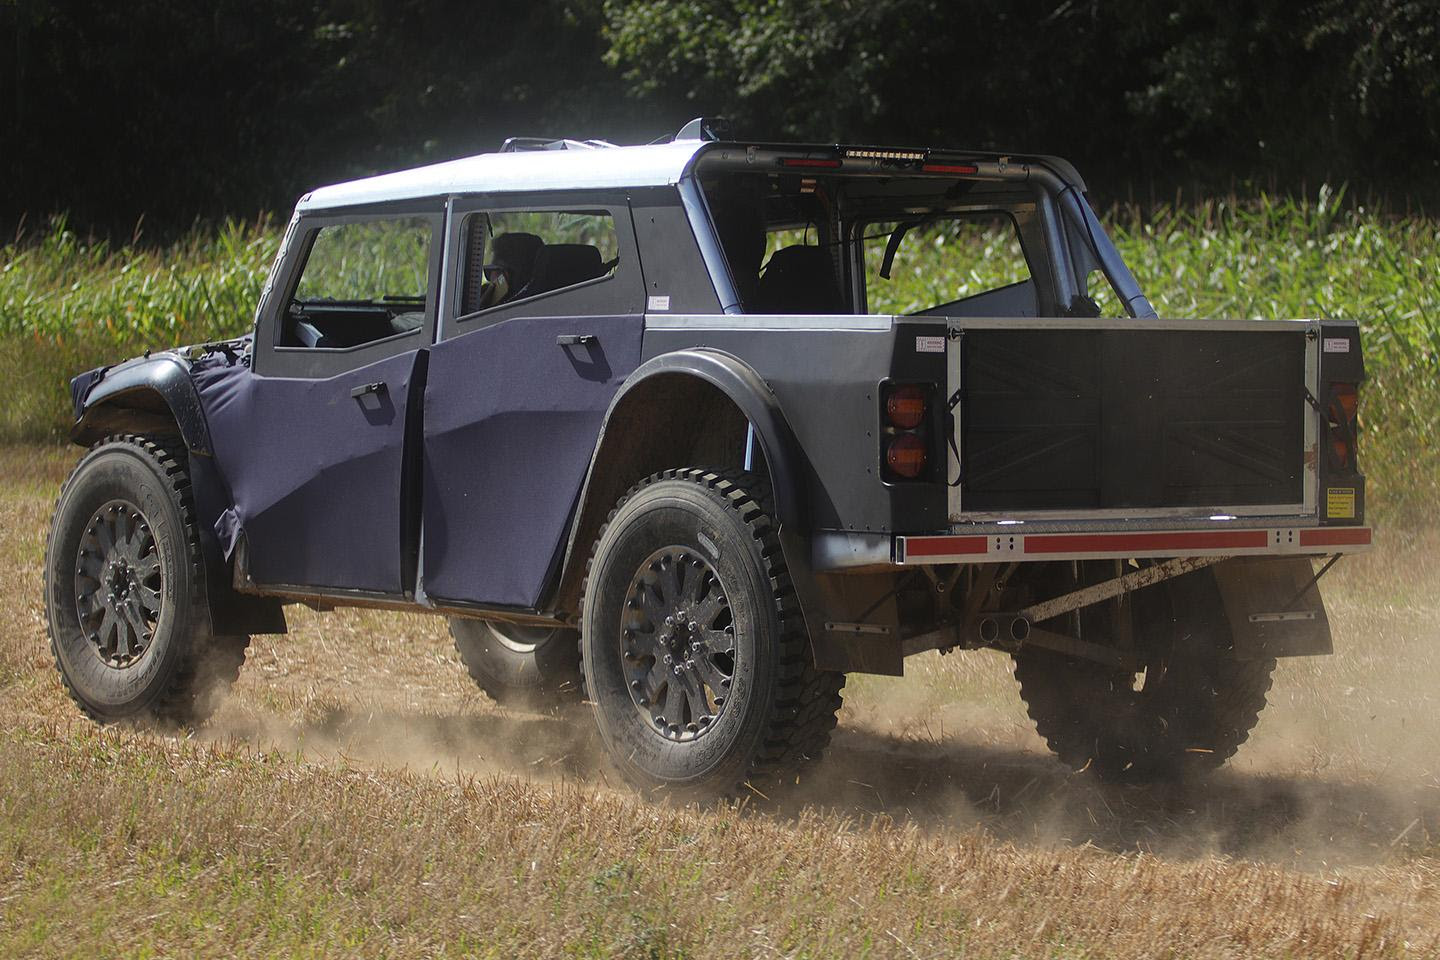 Fering Pioneer is a 4000-mile capable off-roader